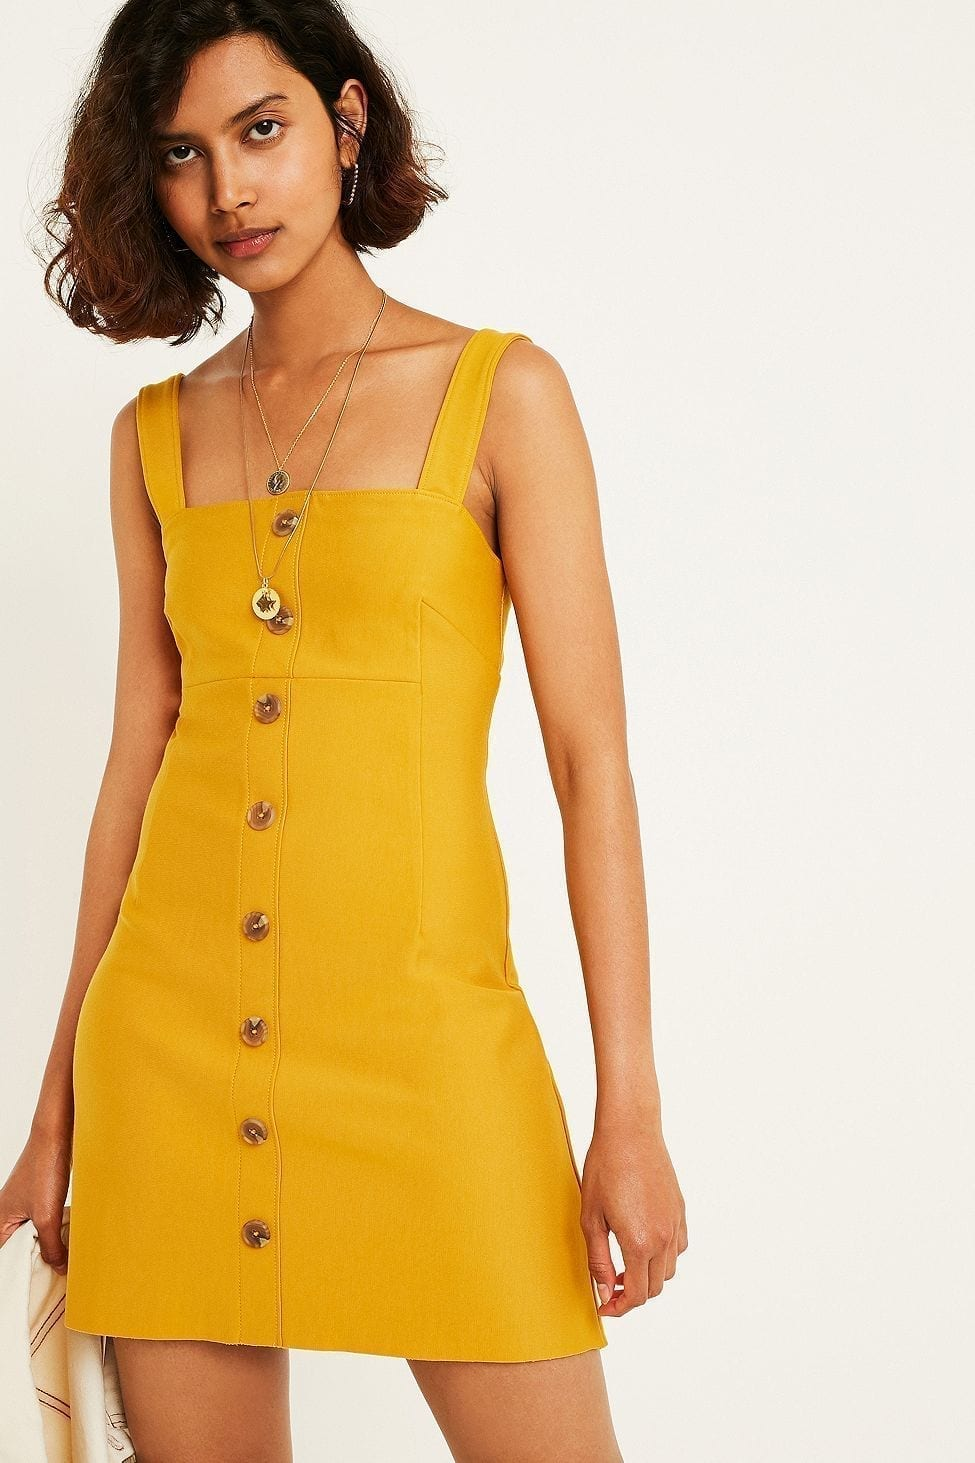 URBAN OUTFITTERS Sandy Button-Through Slip Yellow Dress